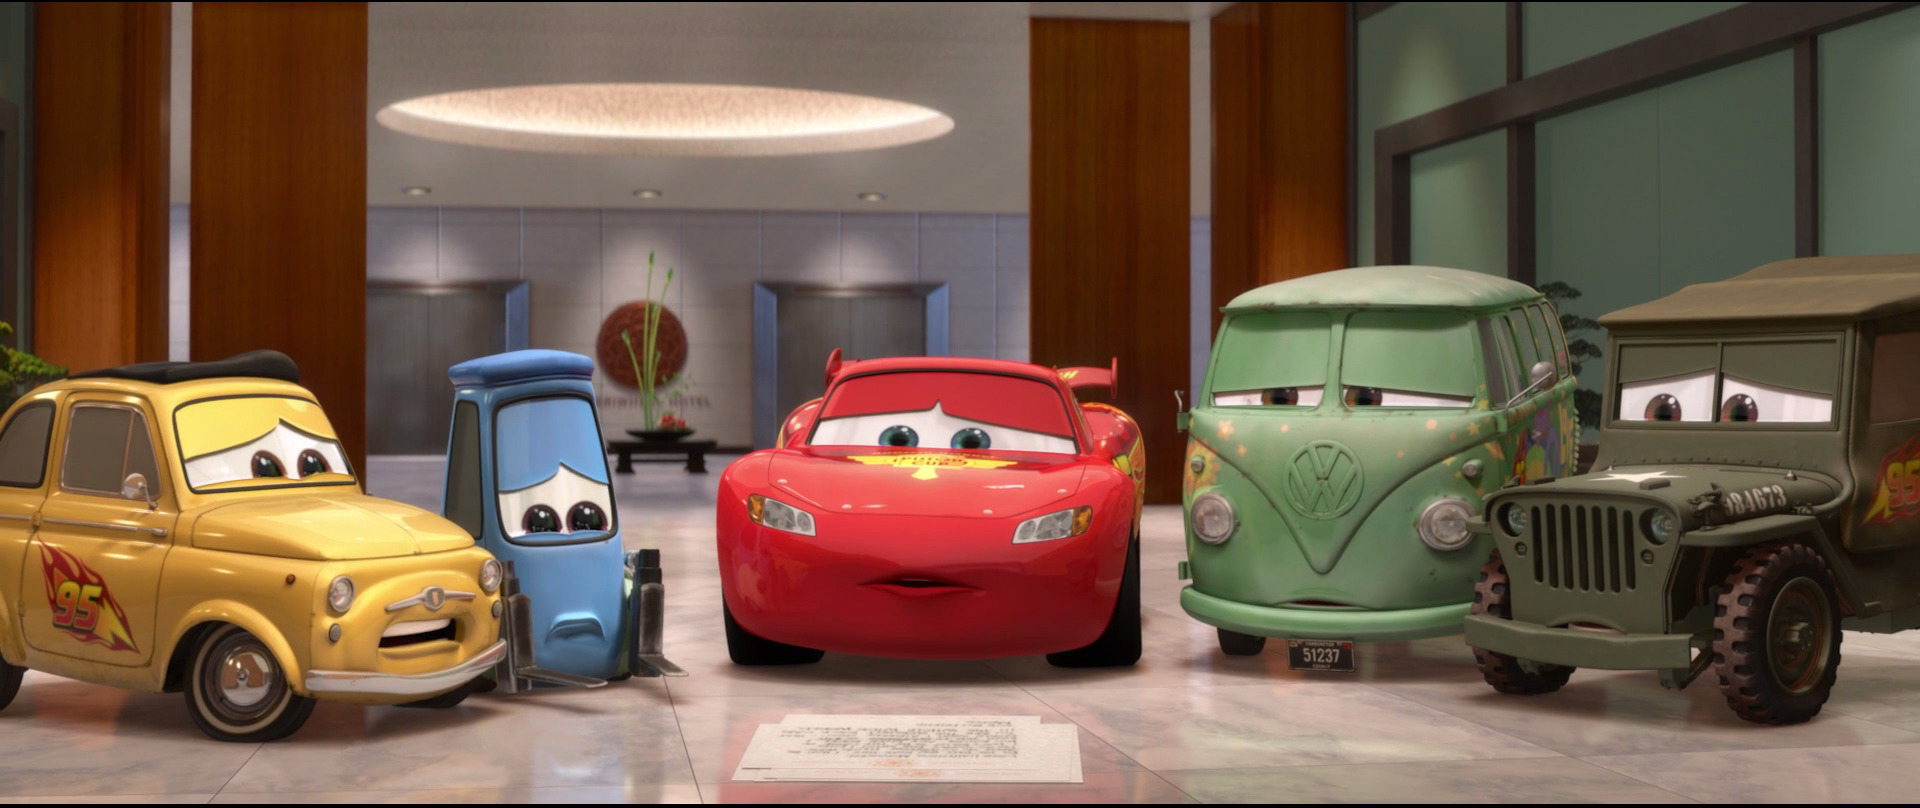 Image result for cars 2, sad